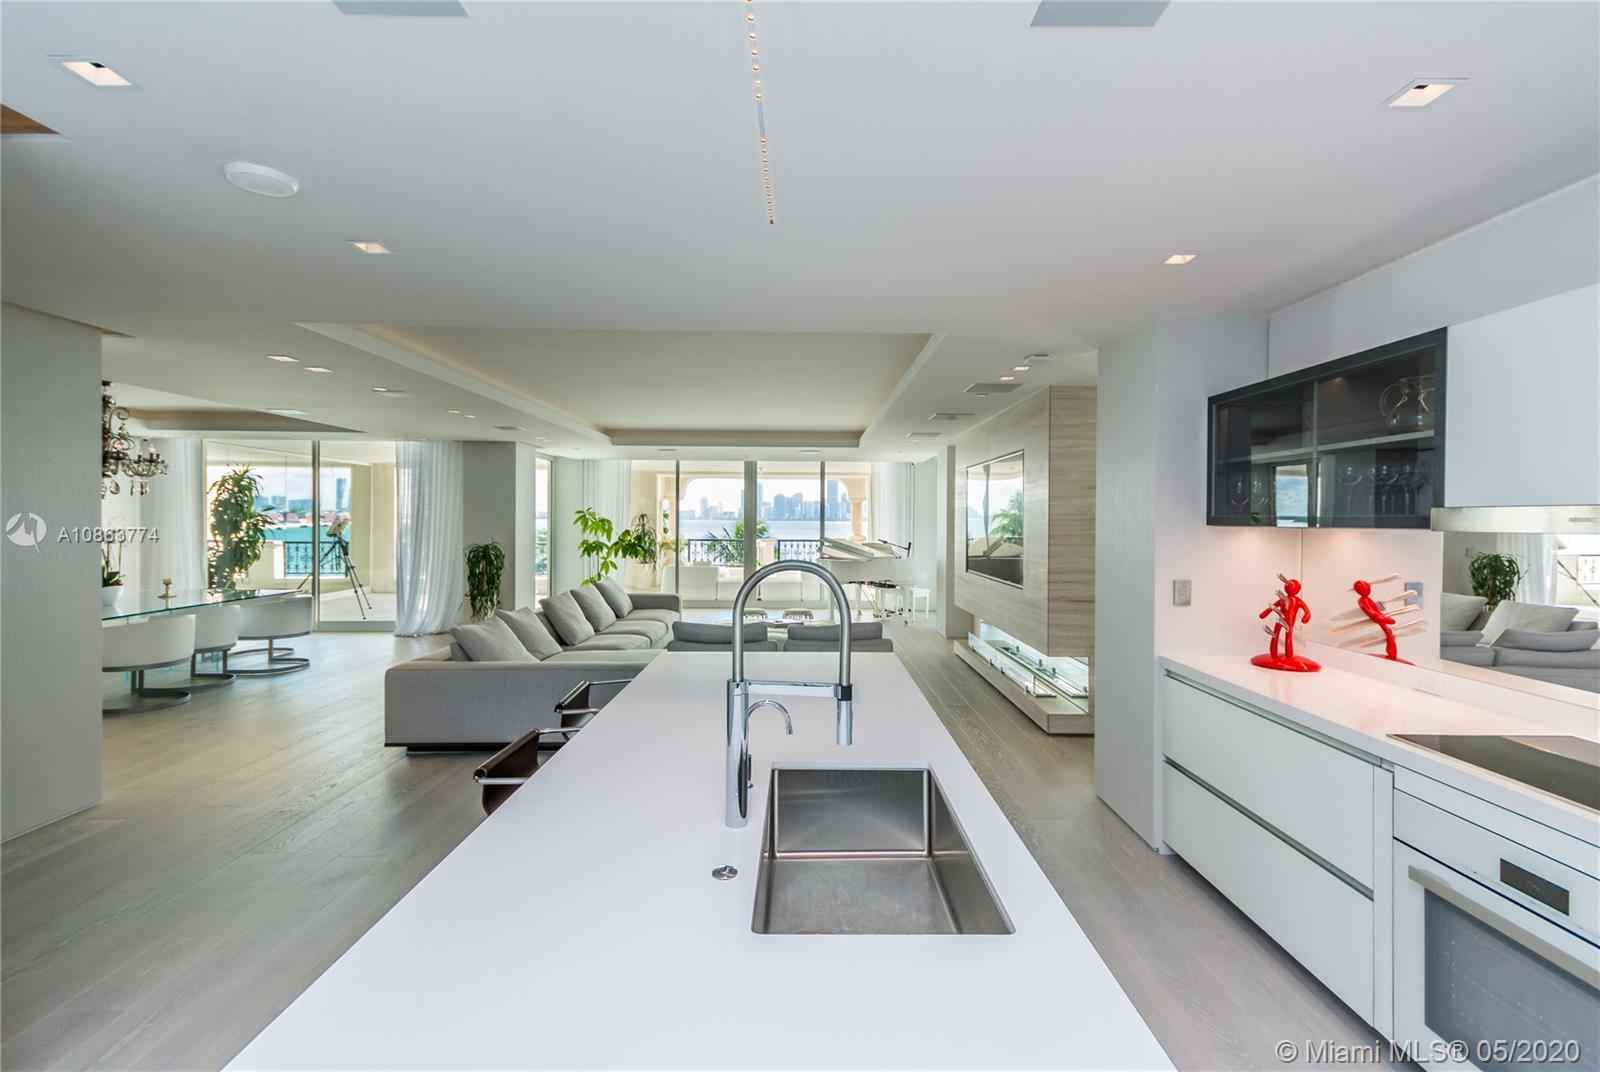 5234 Fisher Island Dr, Unit #5234 Luxury Real Estate